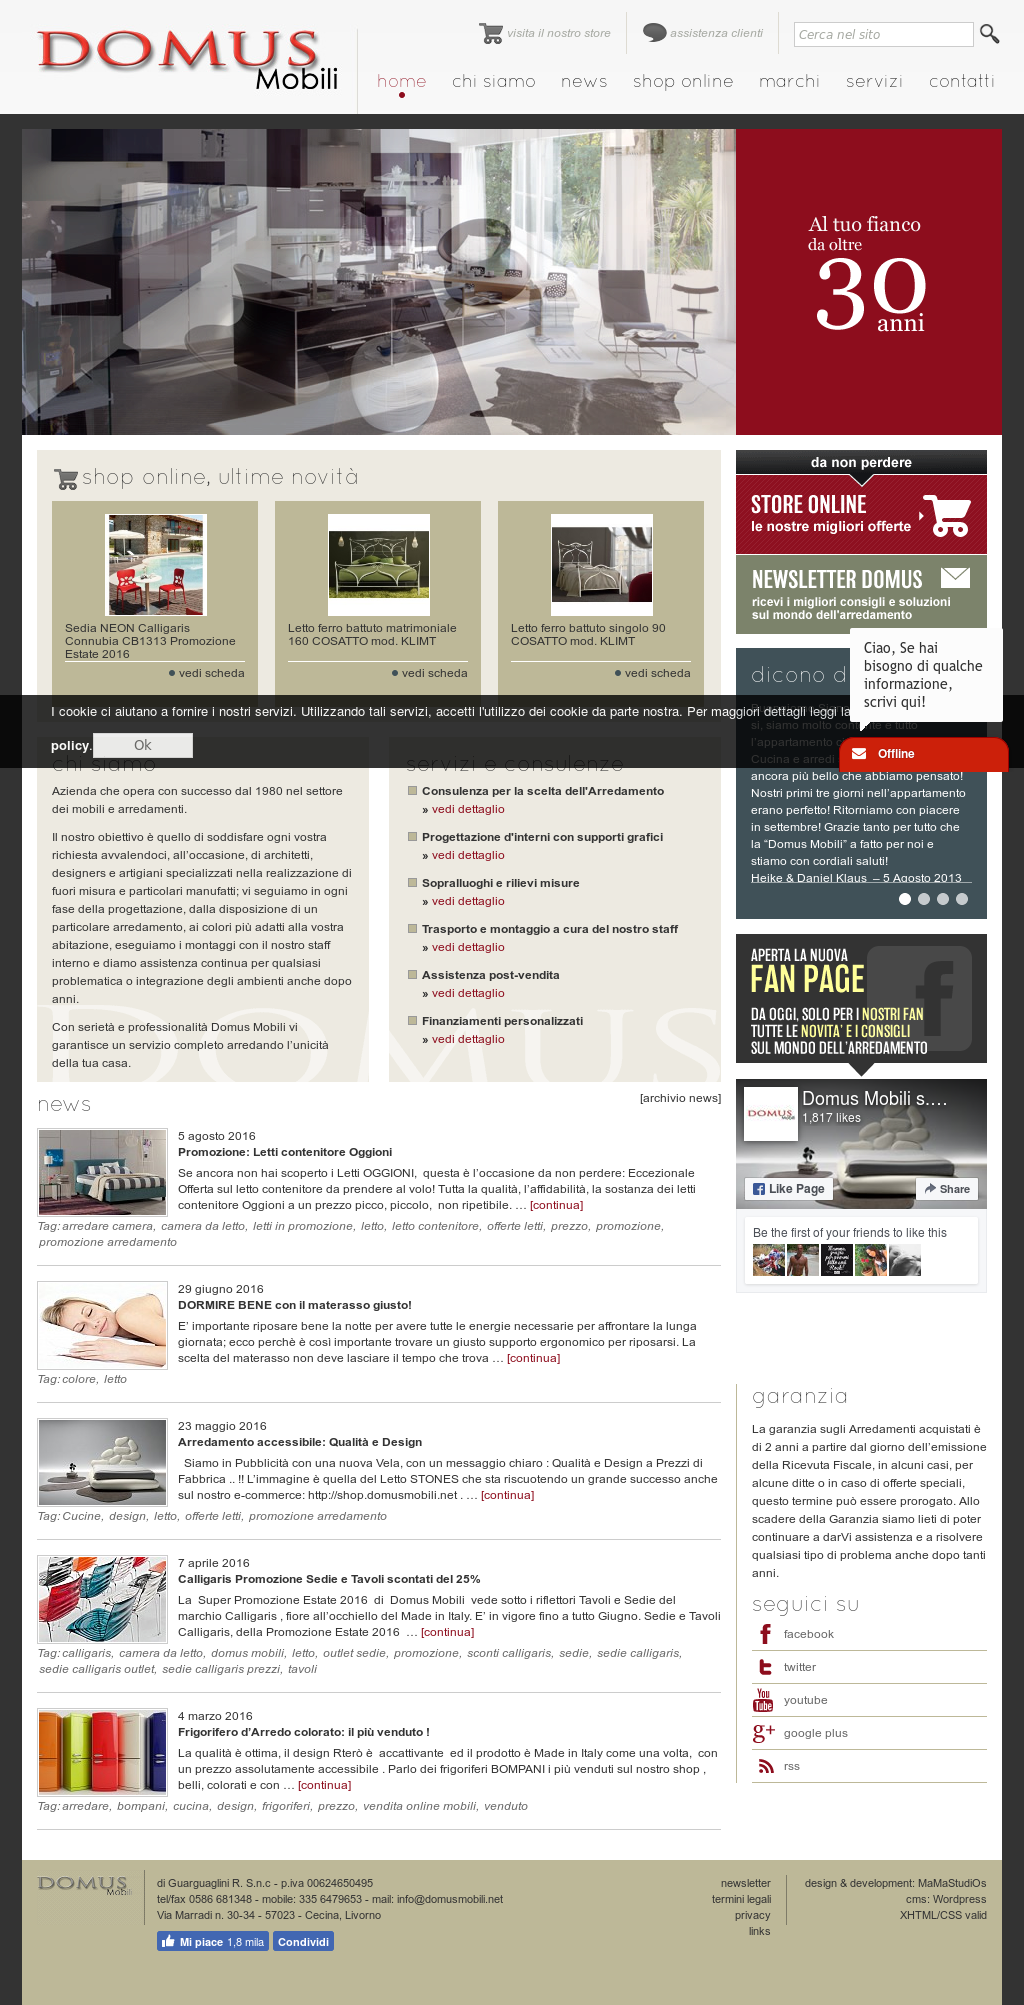 Domus Mobili S.n.c Competitors, Revenue and Employees ...